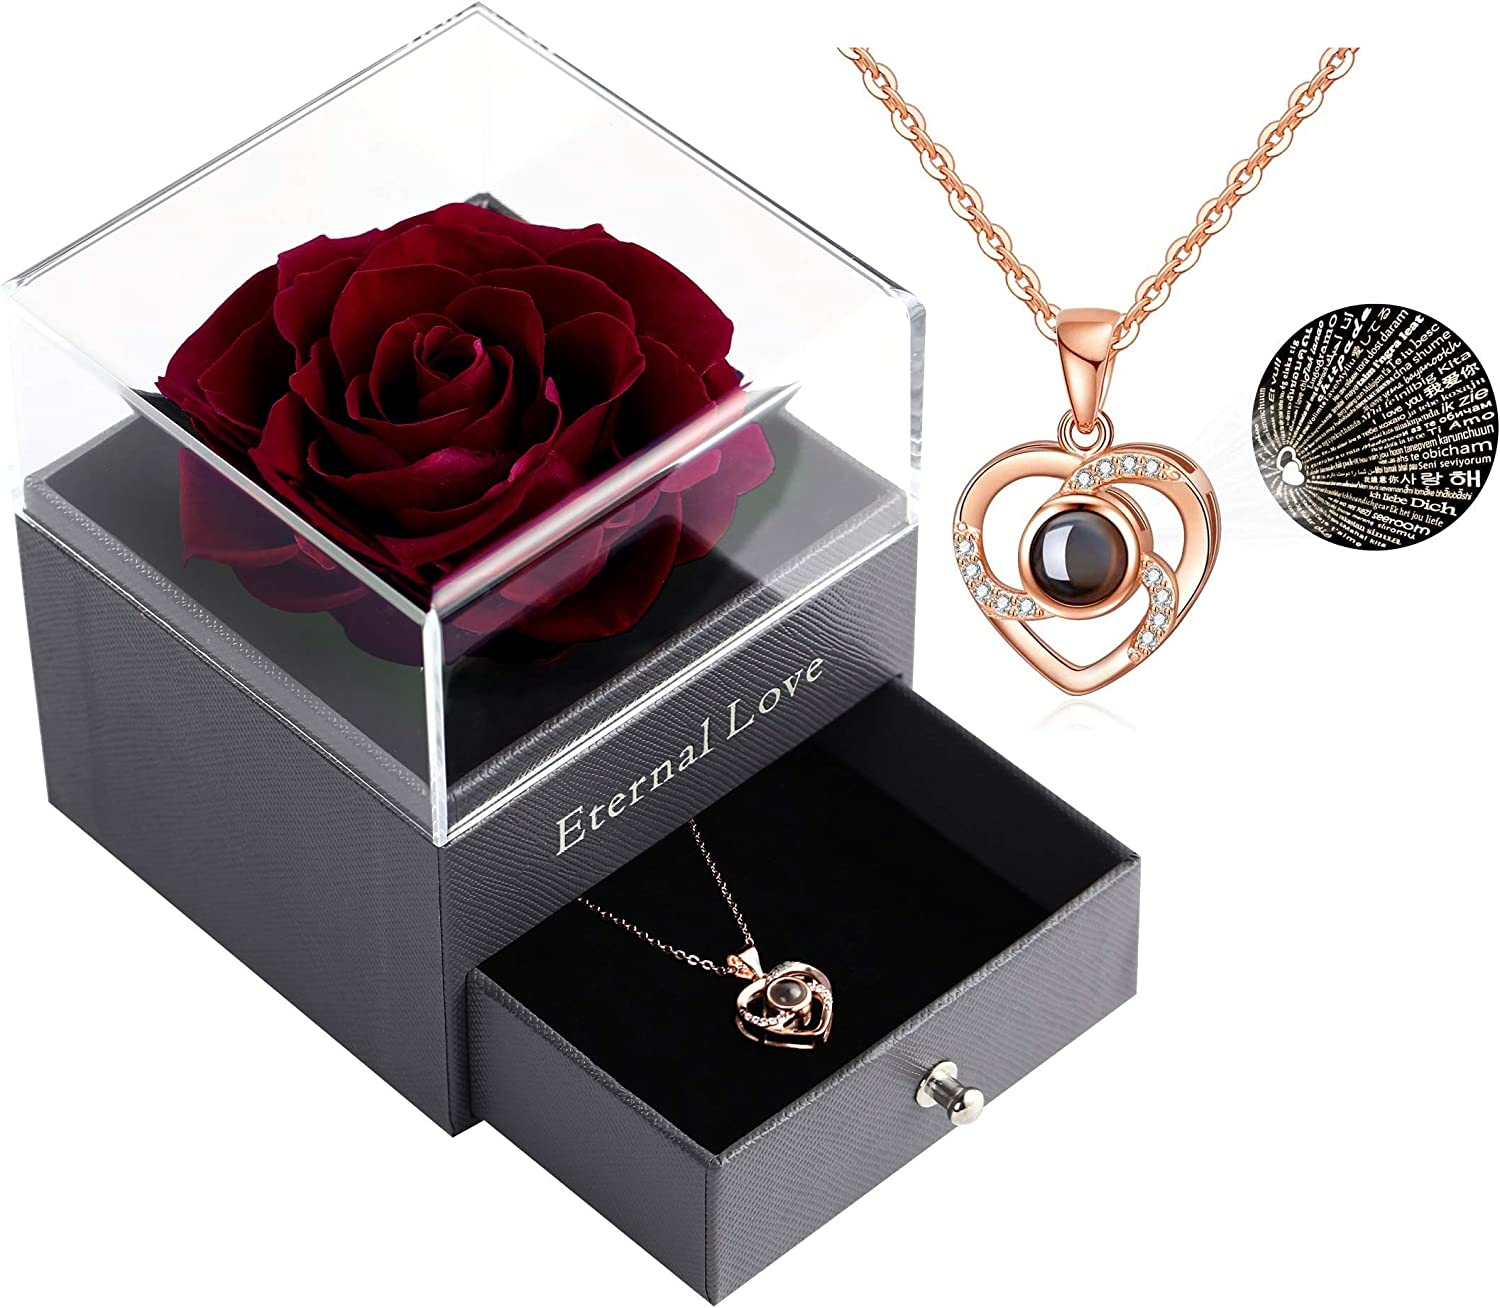 Eternal Handmade Rose with Love You Necklace Rose Gift Box Mothers Day Anniversary Handmade Fresh Rose Gift for Her on Birthday Valentines Day Blue Real Preserved Rose